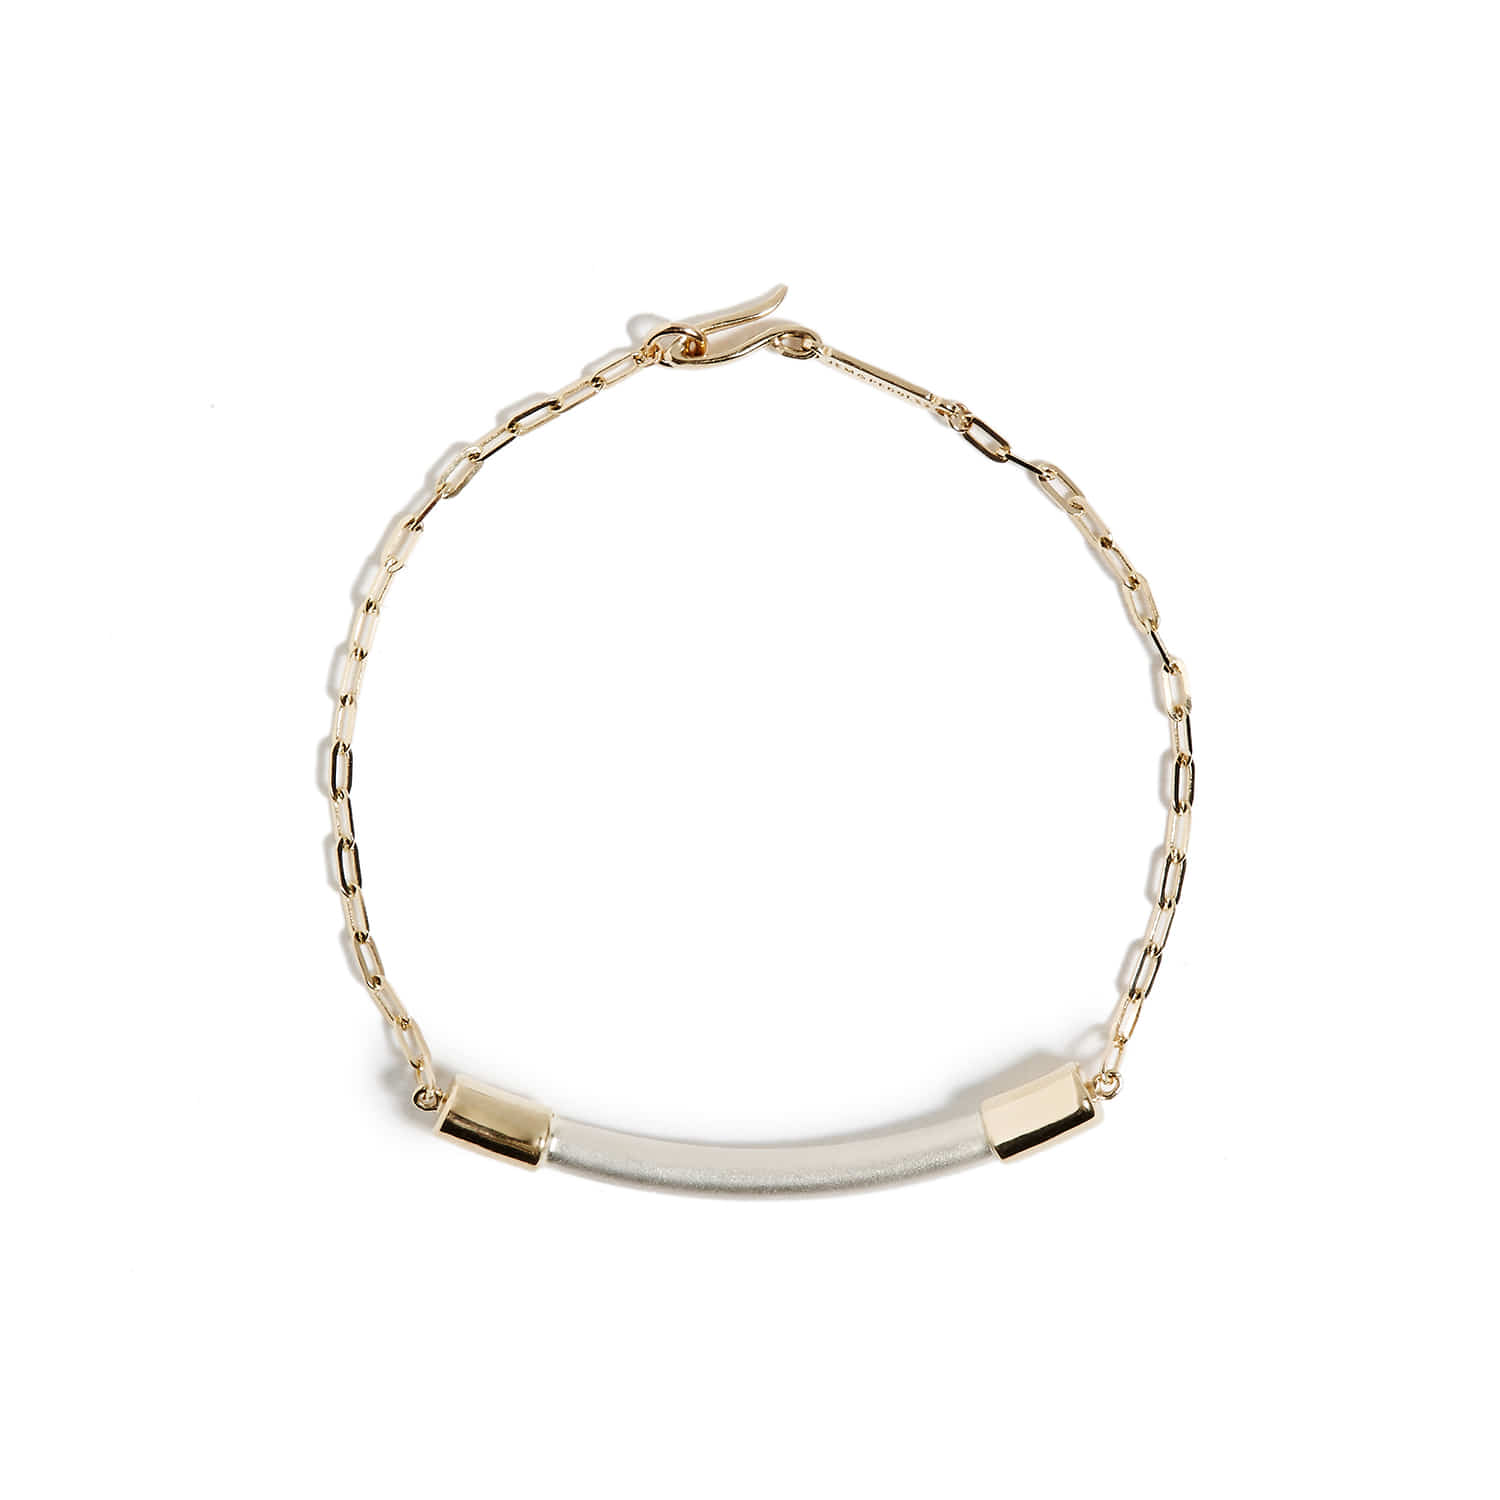 NS_Gold chain bracelet